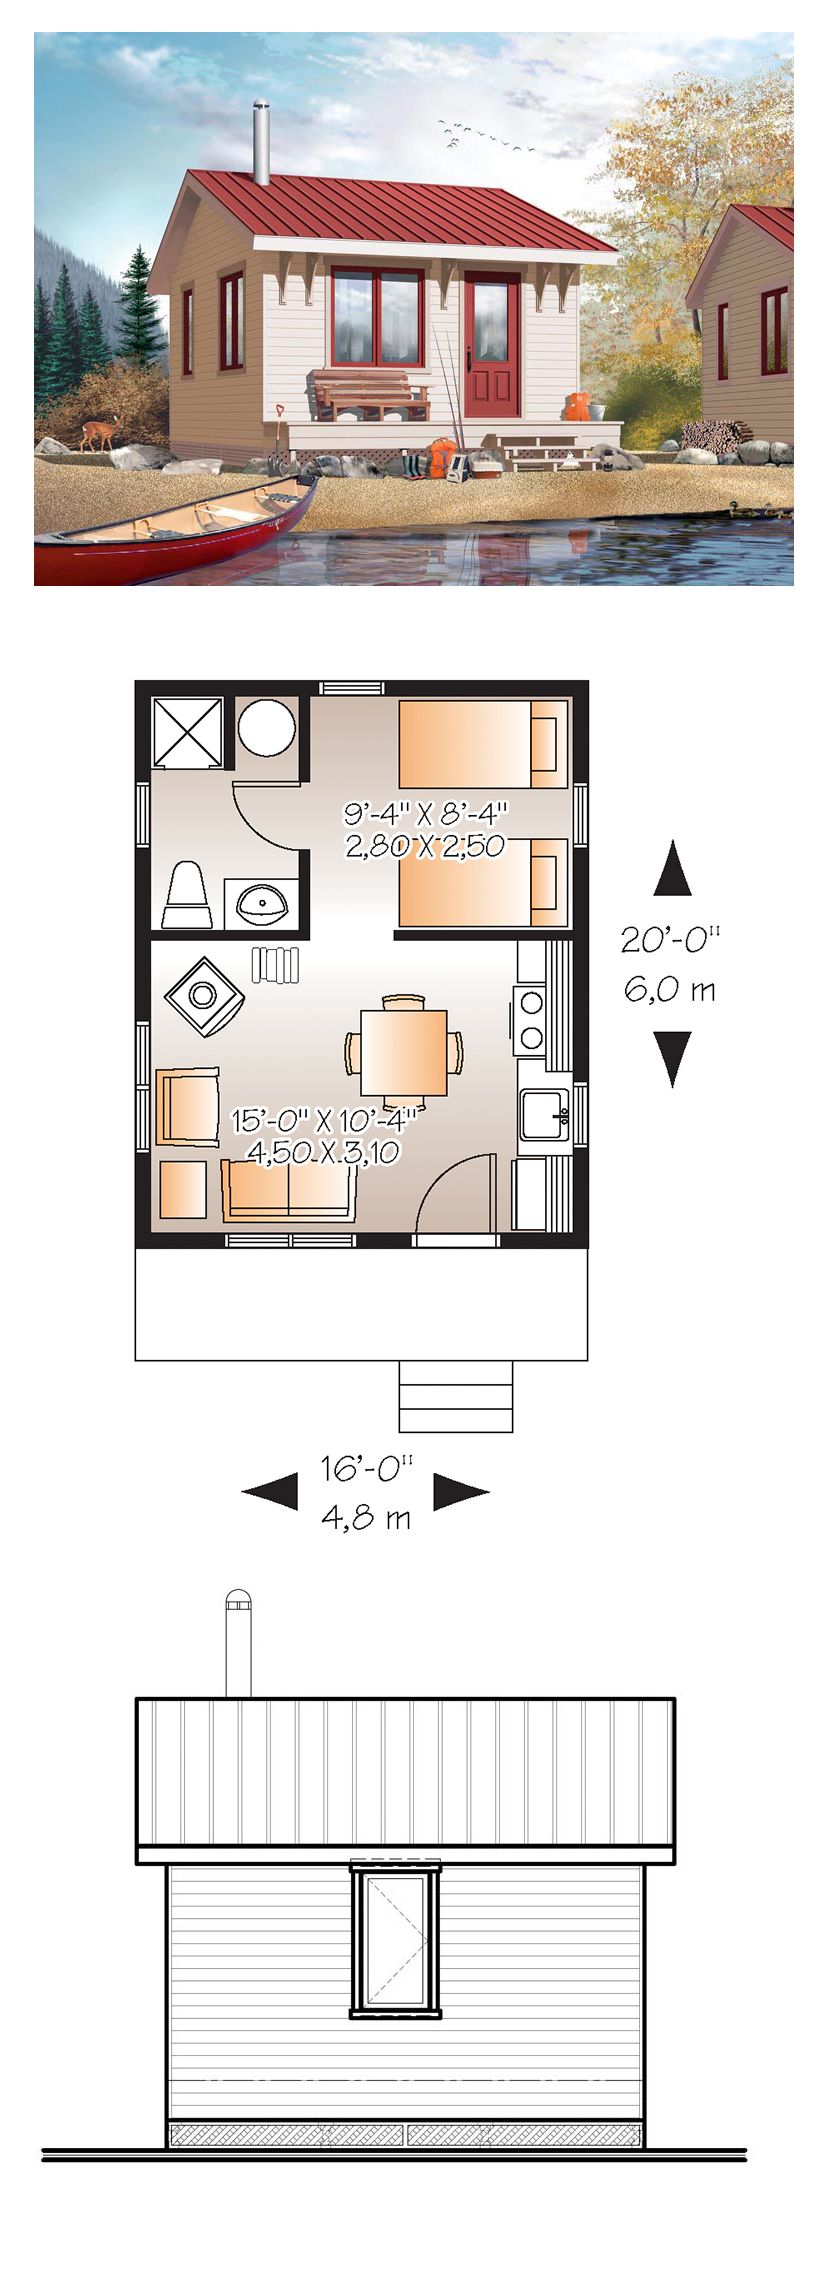 Brilliant Cabin Style House Plan Number 76163 With 1 Bed 1 Bath In Download Free Architecture Designs Scobabritishbridgeorg